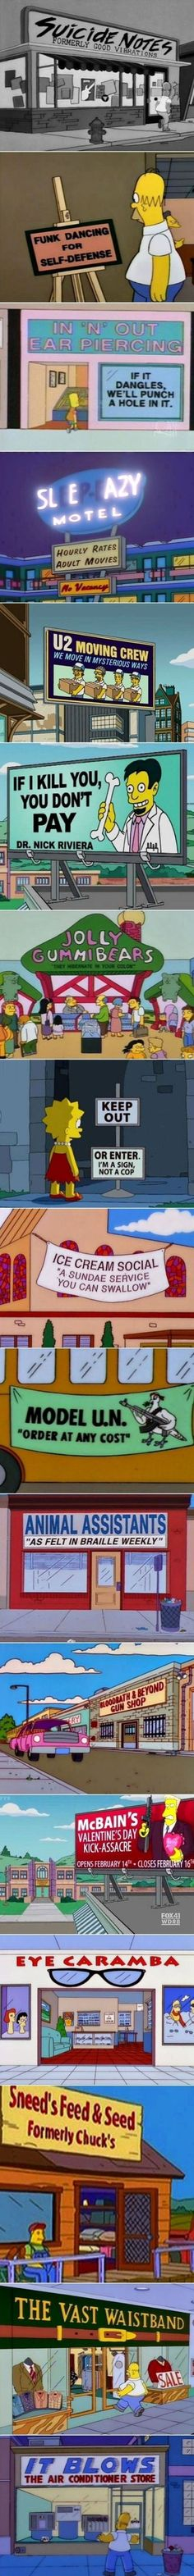 Signs from The Simpsons